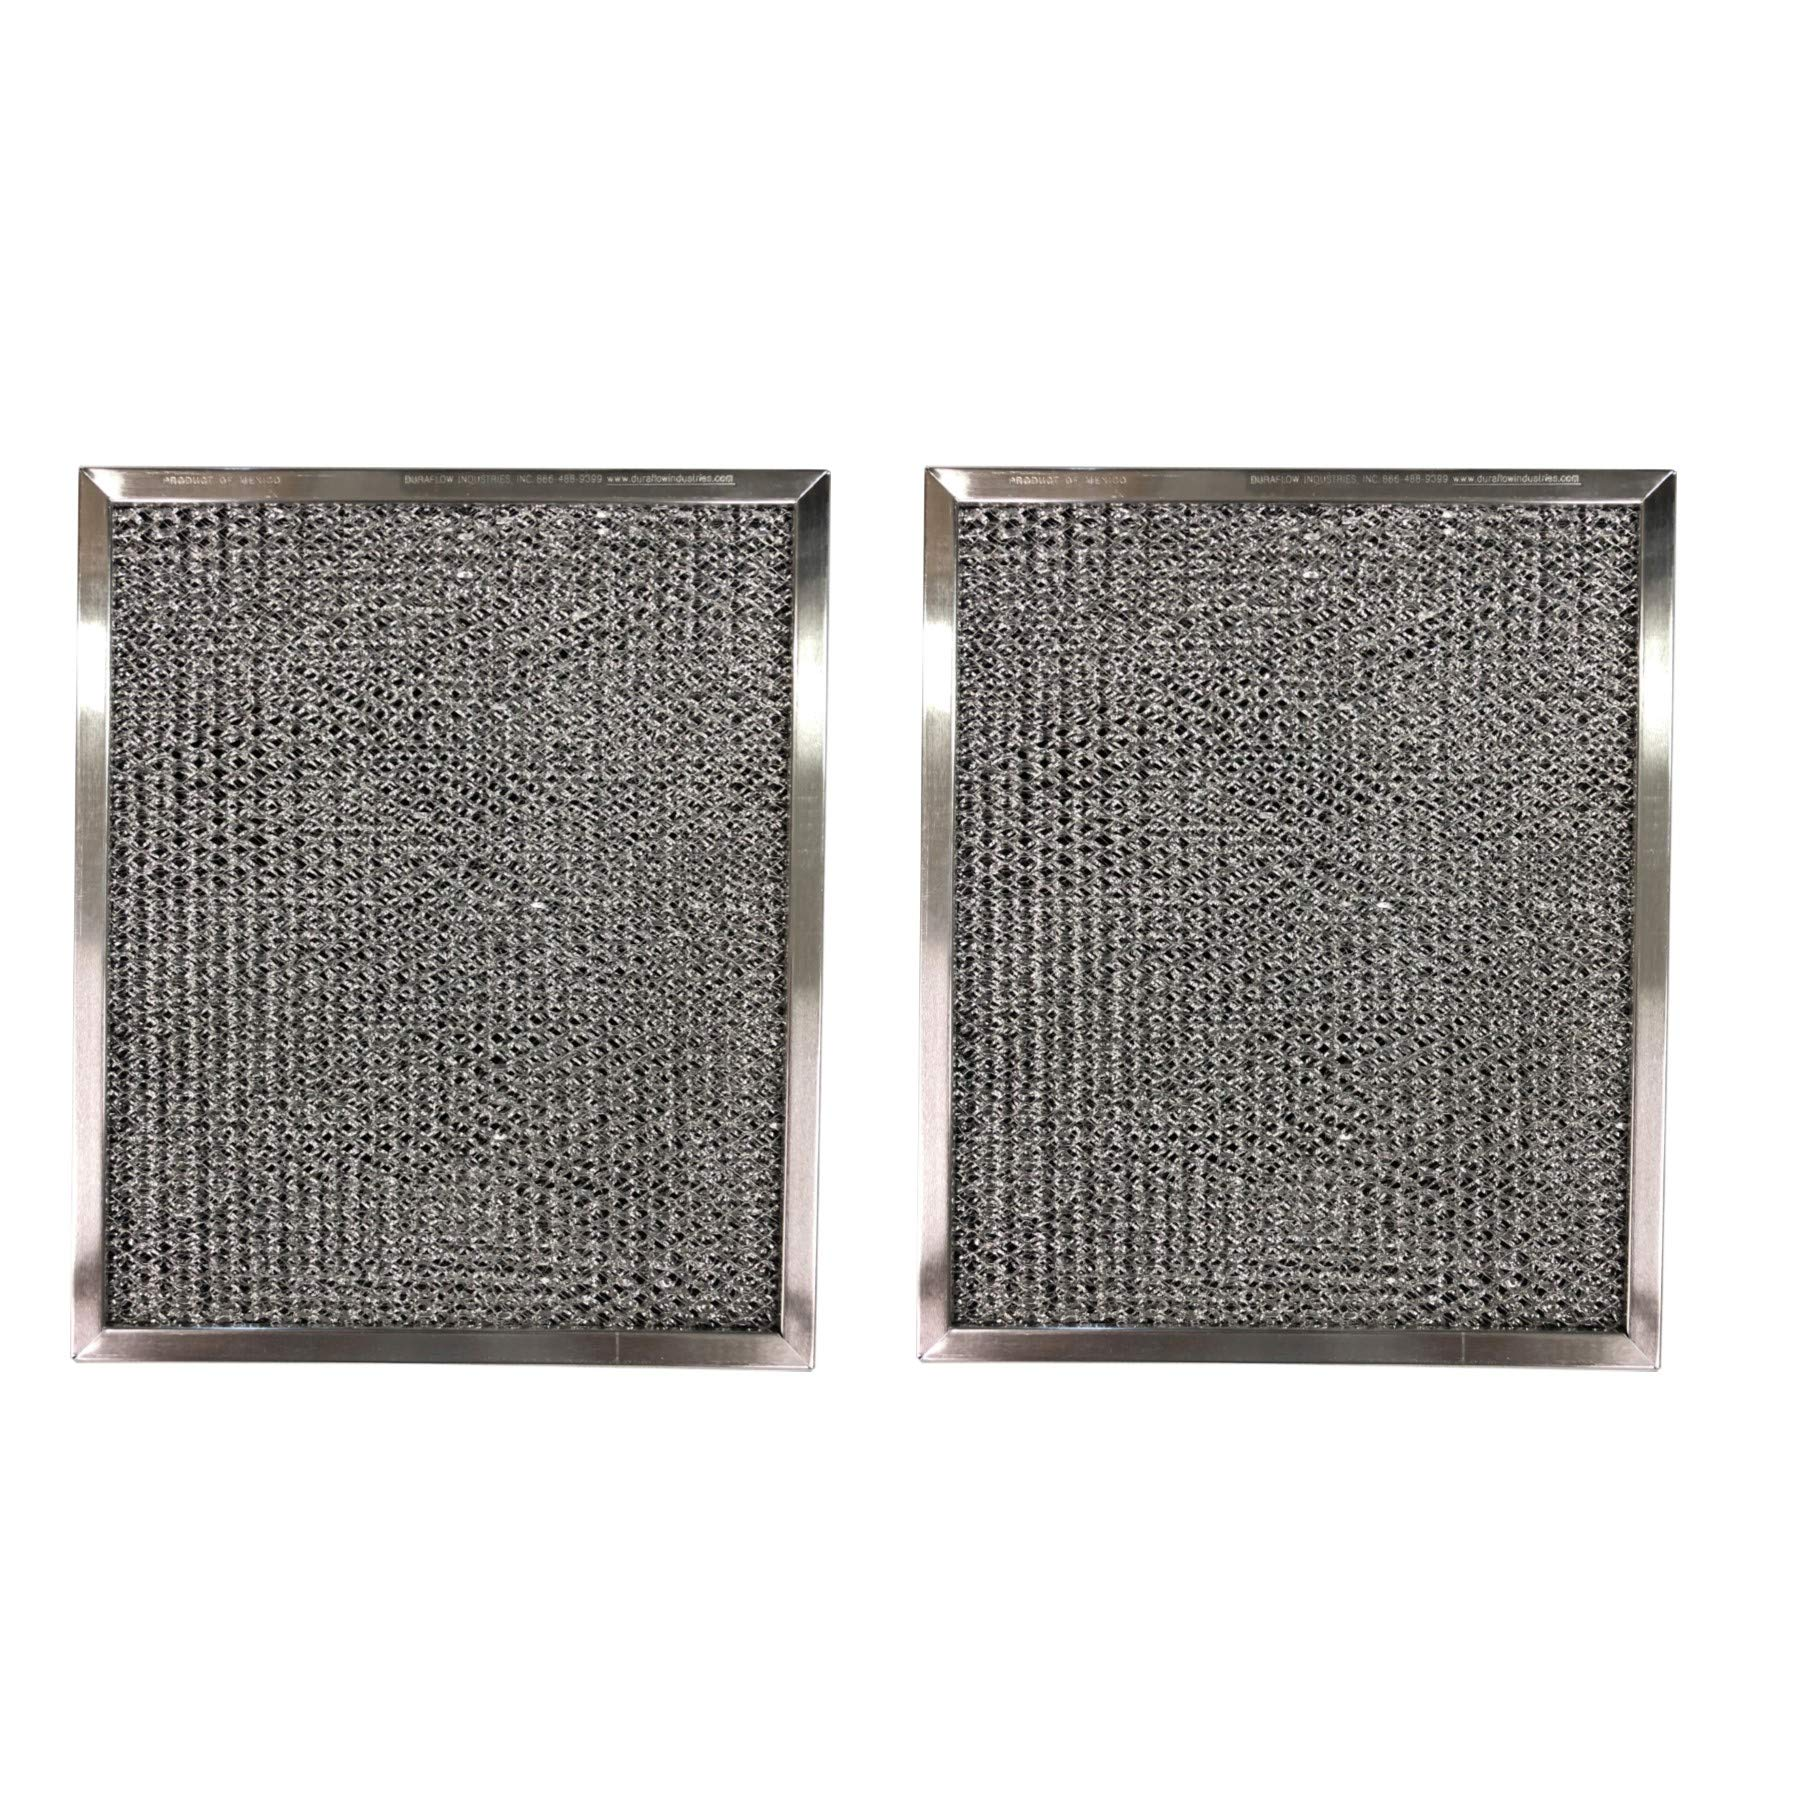 Aluminum Replacement Range Filter Compatible With Nutone K079000, K079 000  Dimensions: 8 x 11 x 3/8